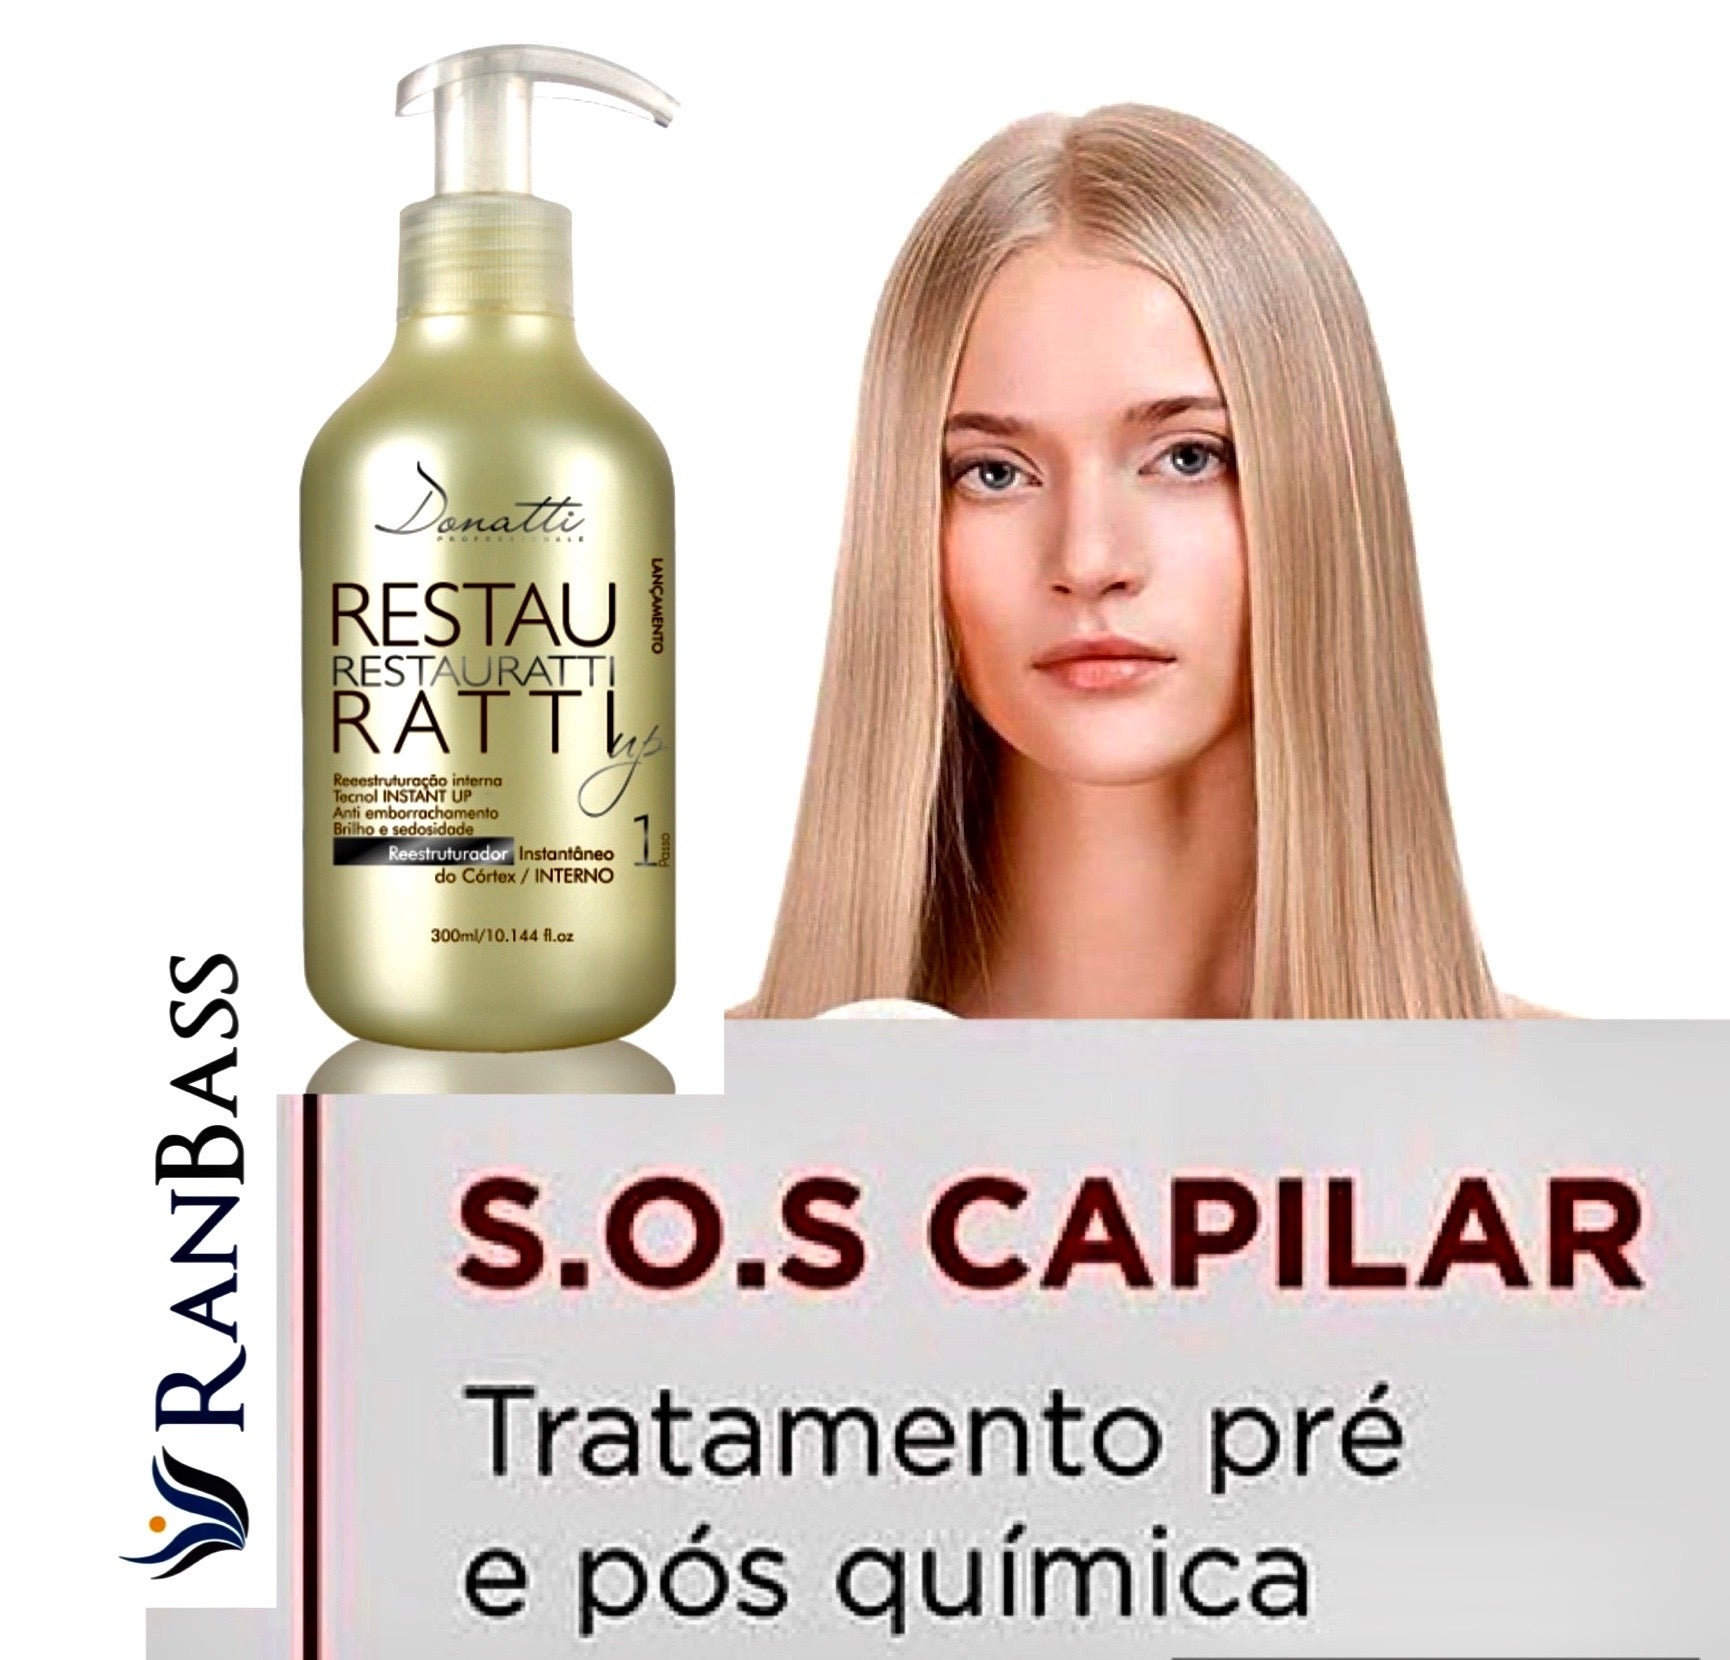 Restauratti Up - (SIZES: 10.58fl oz / 17fl oz) - It acts directly on the hair fiber, strengthening it and restoring it from the aggressions caused by chemical processes.